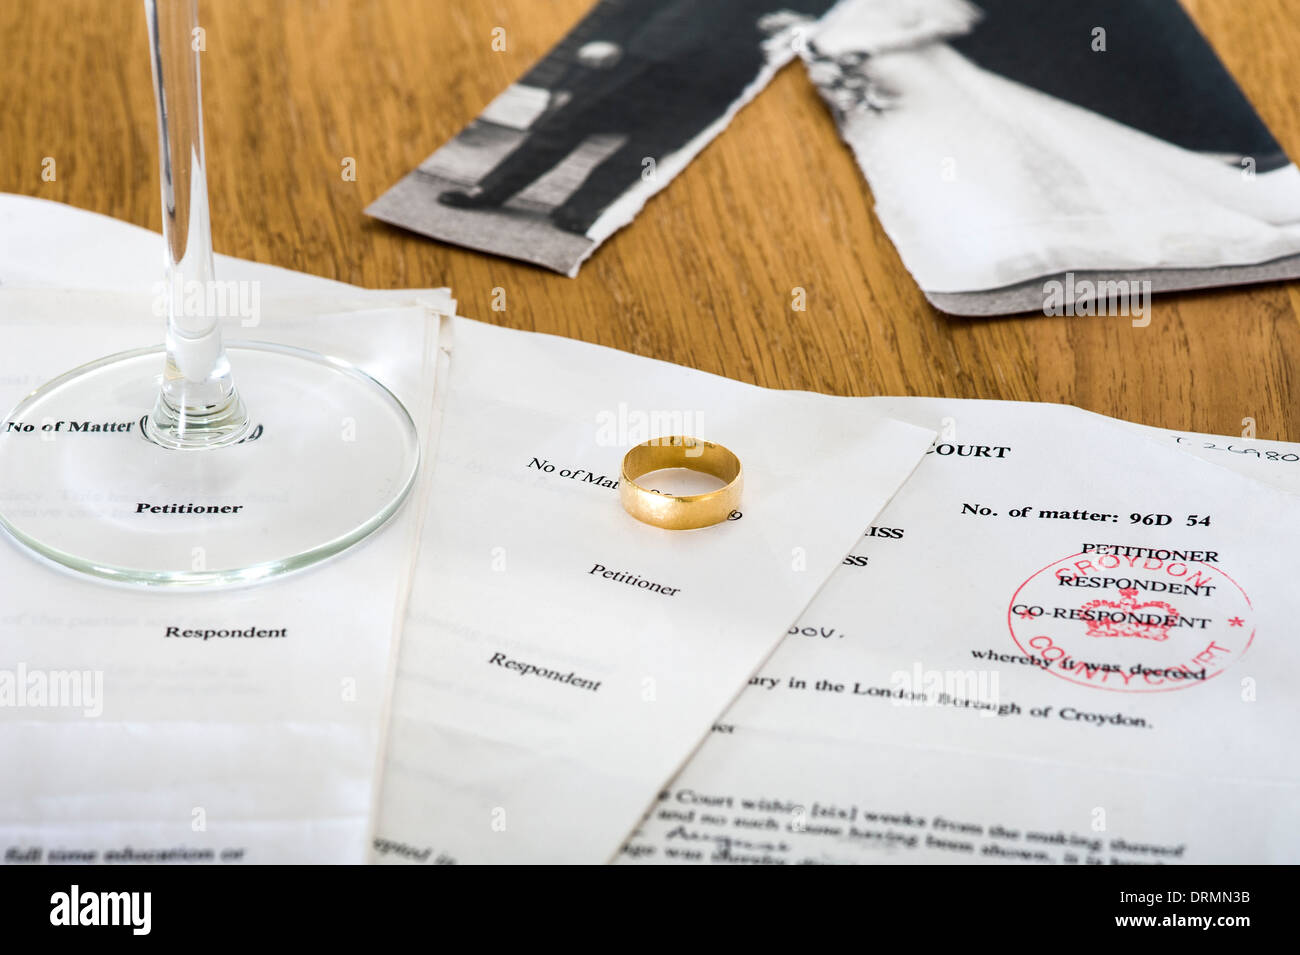 Divorce documents on a table, with wedding ring and wedding photograph. - Stock Image